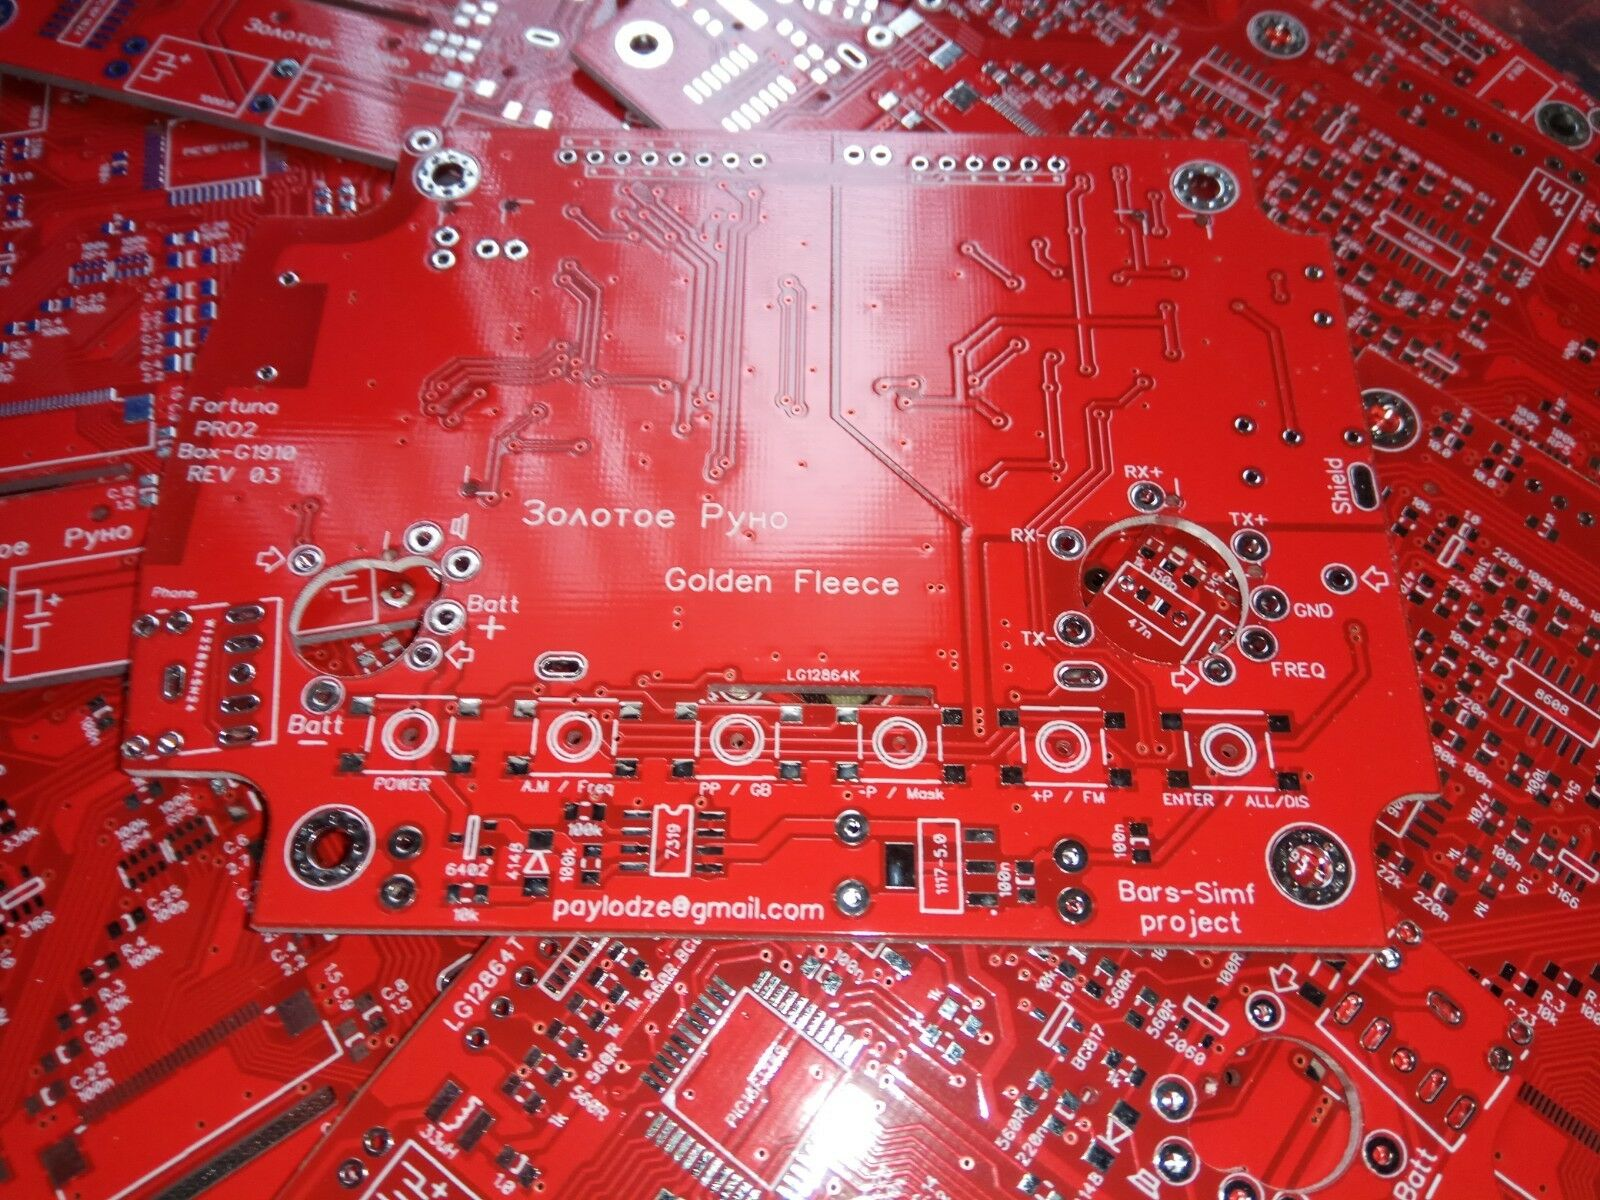 Boards for assembling the metal detector Fortune PRO 2